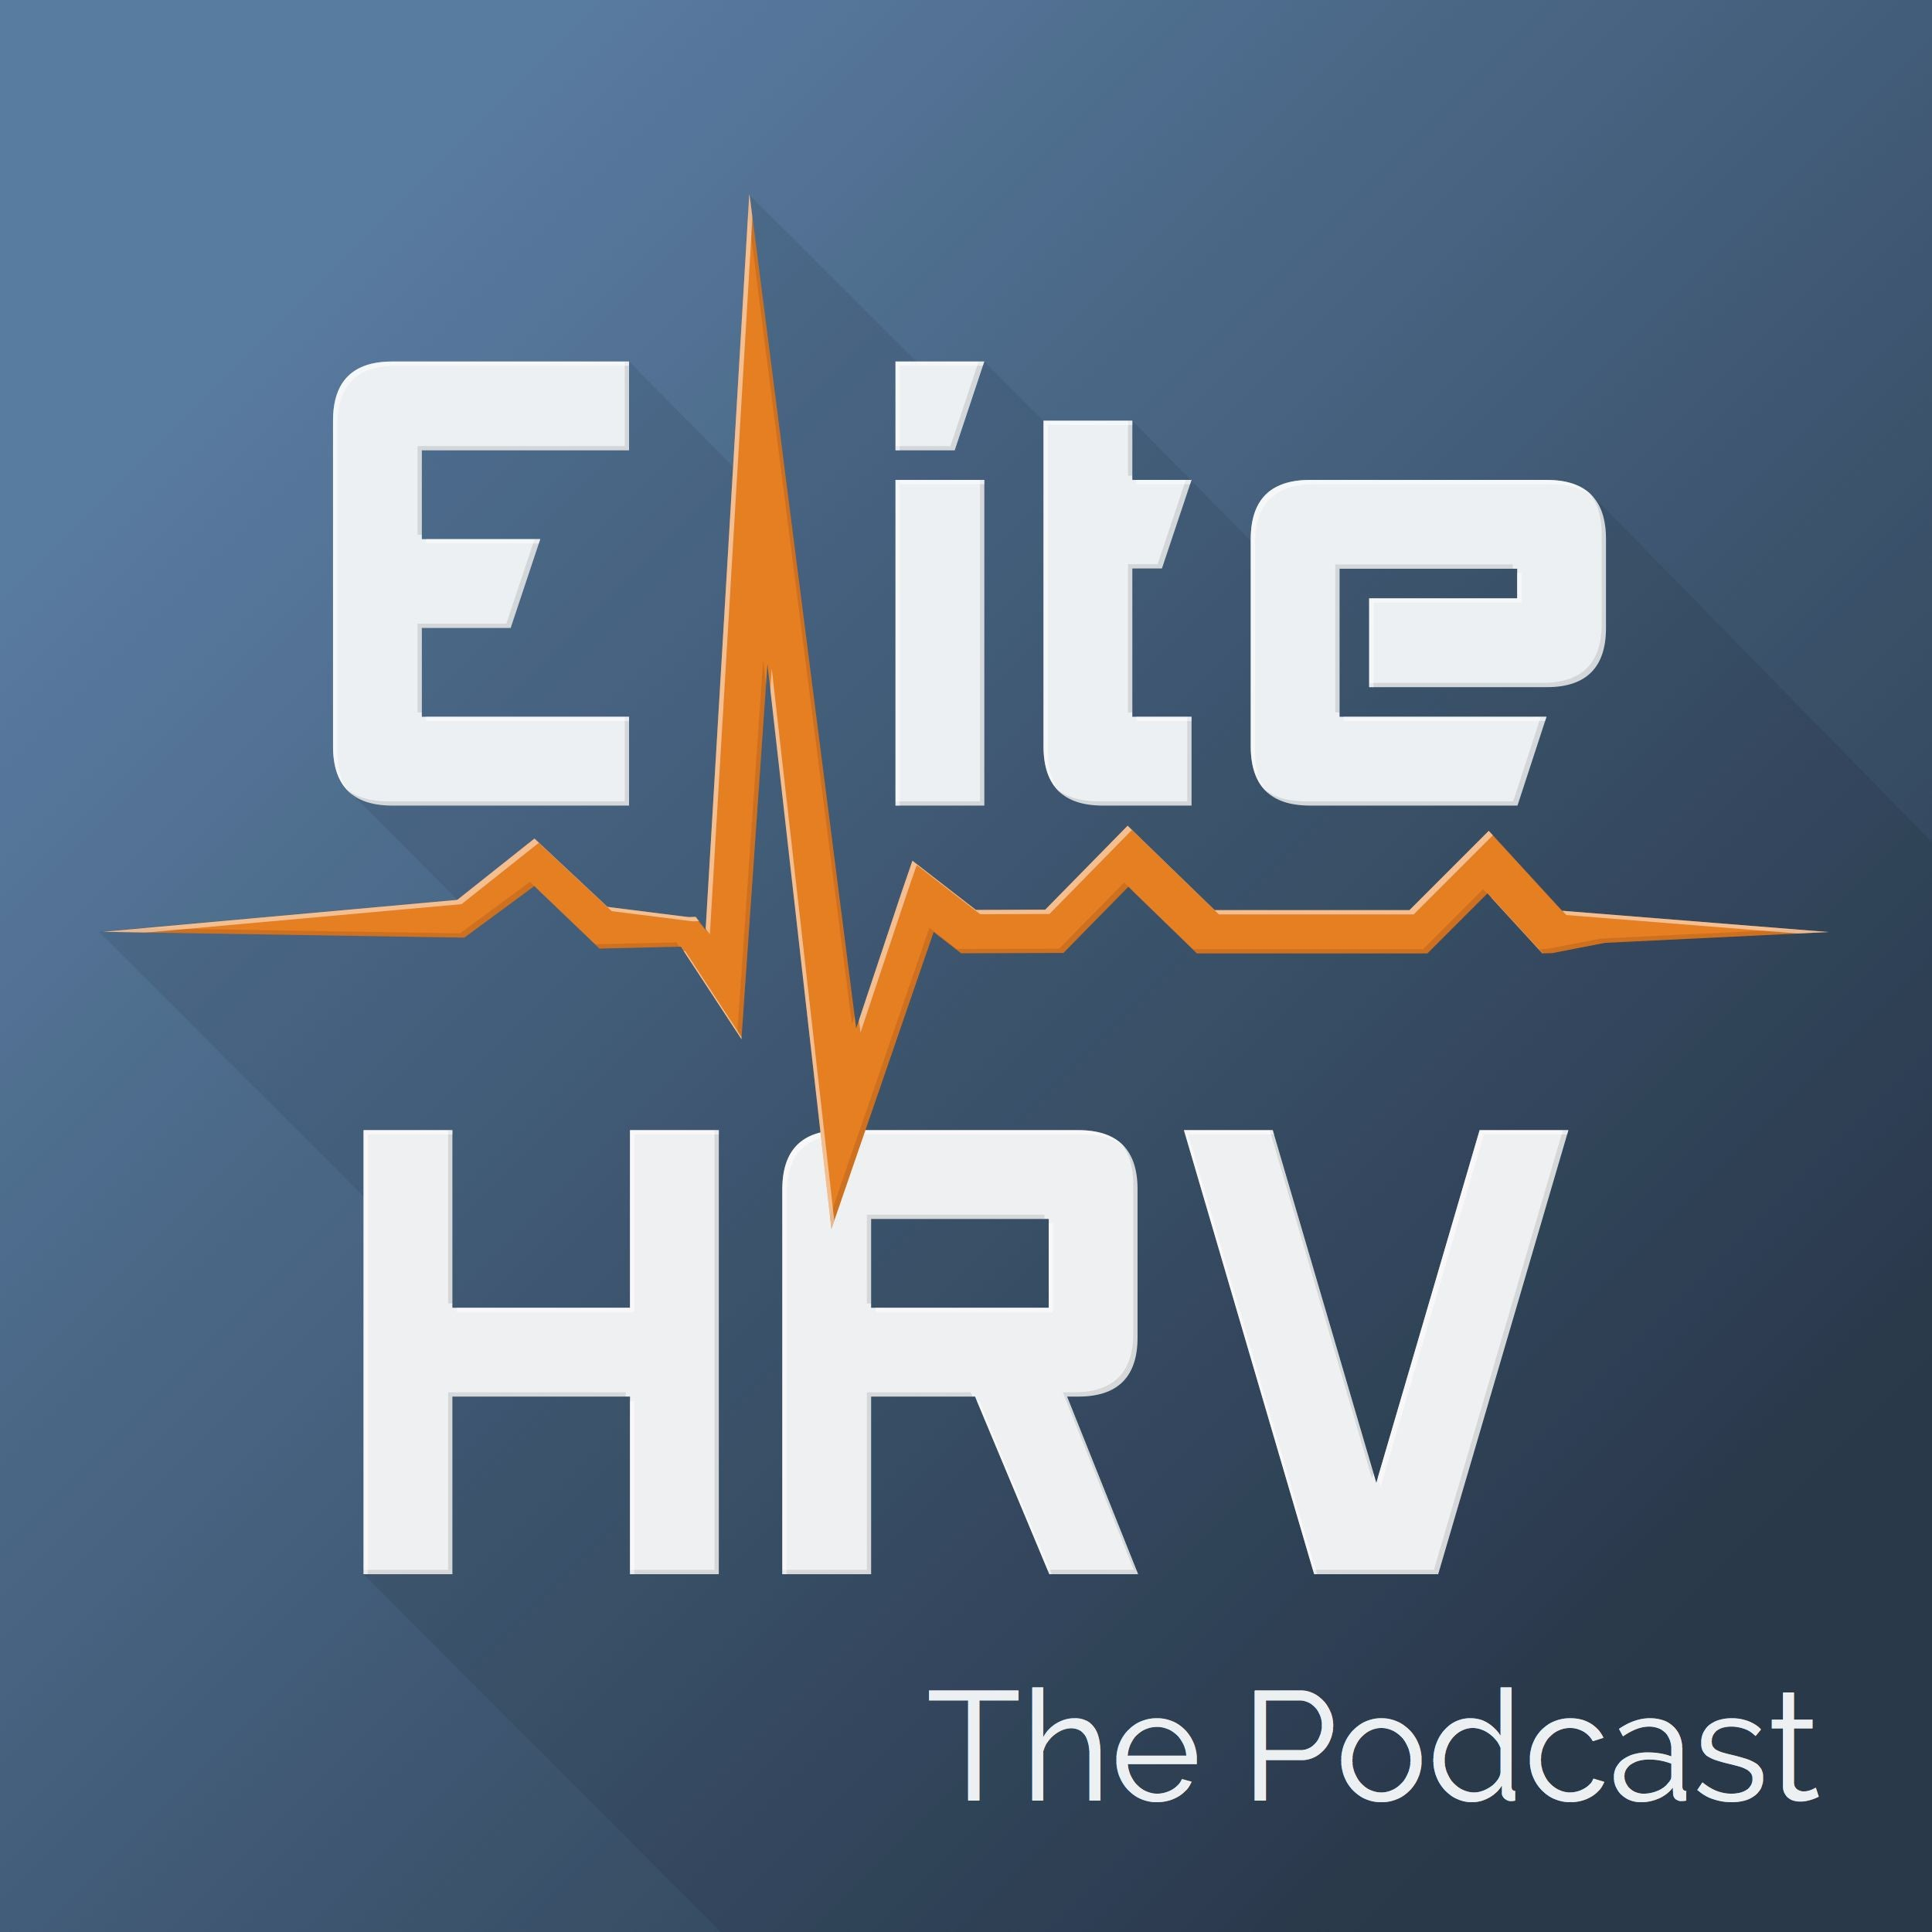 Elite HRV Podcast with Amy Baxter